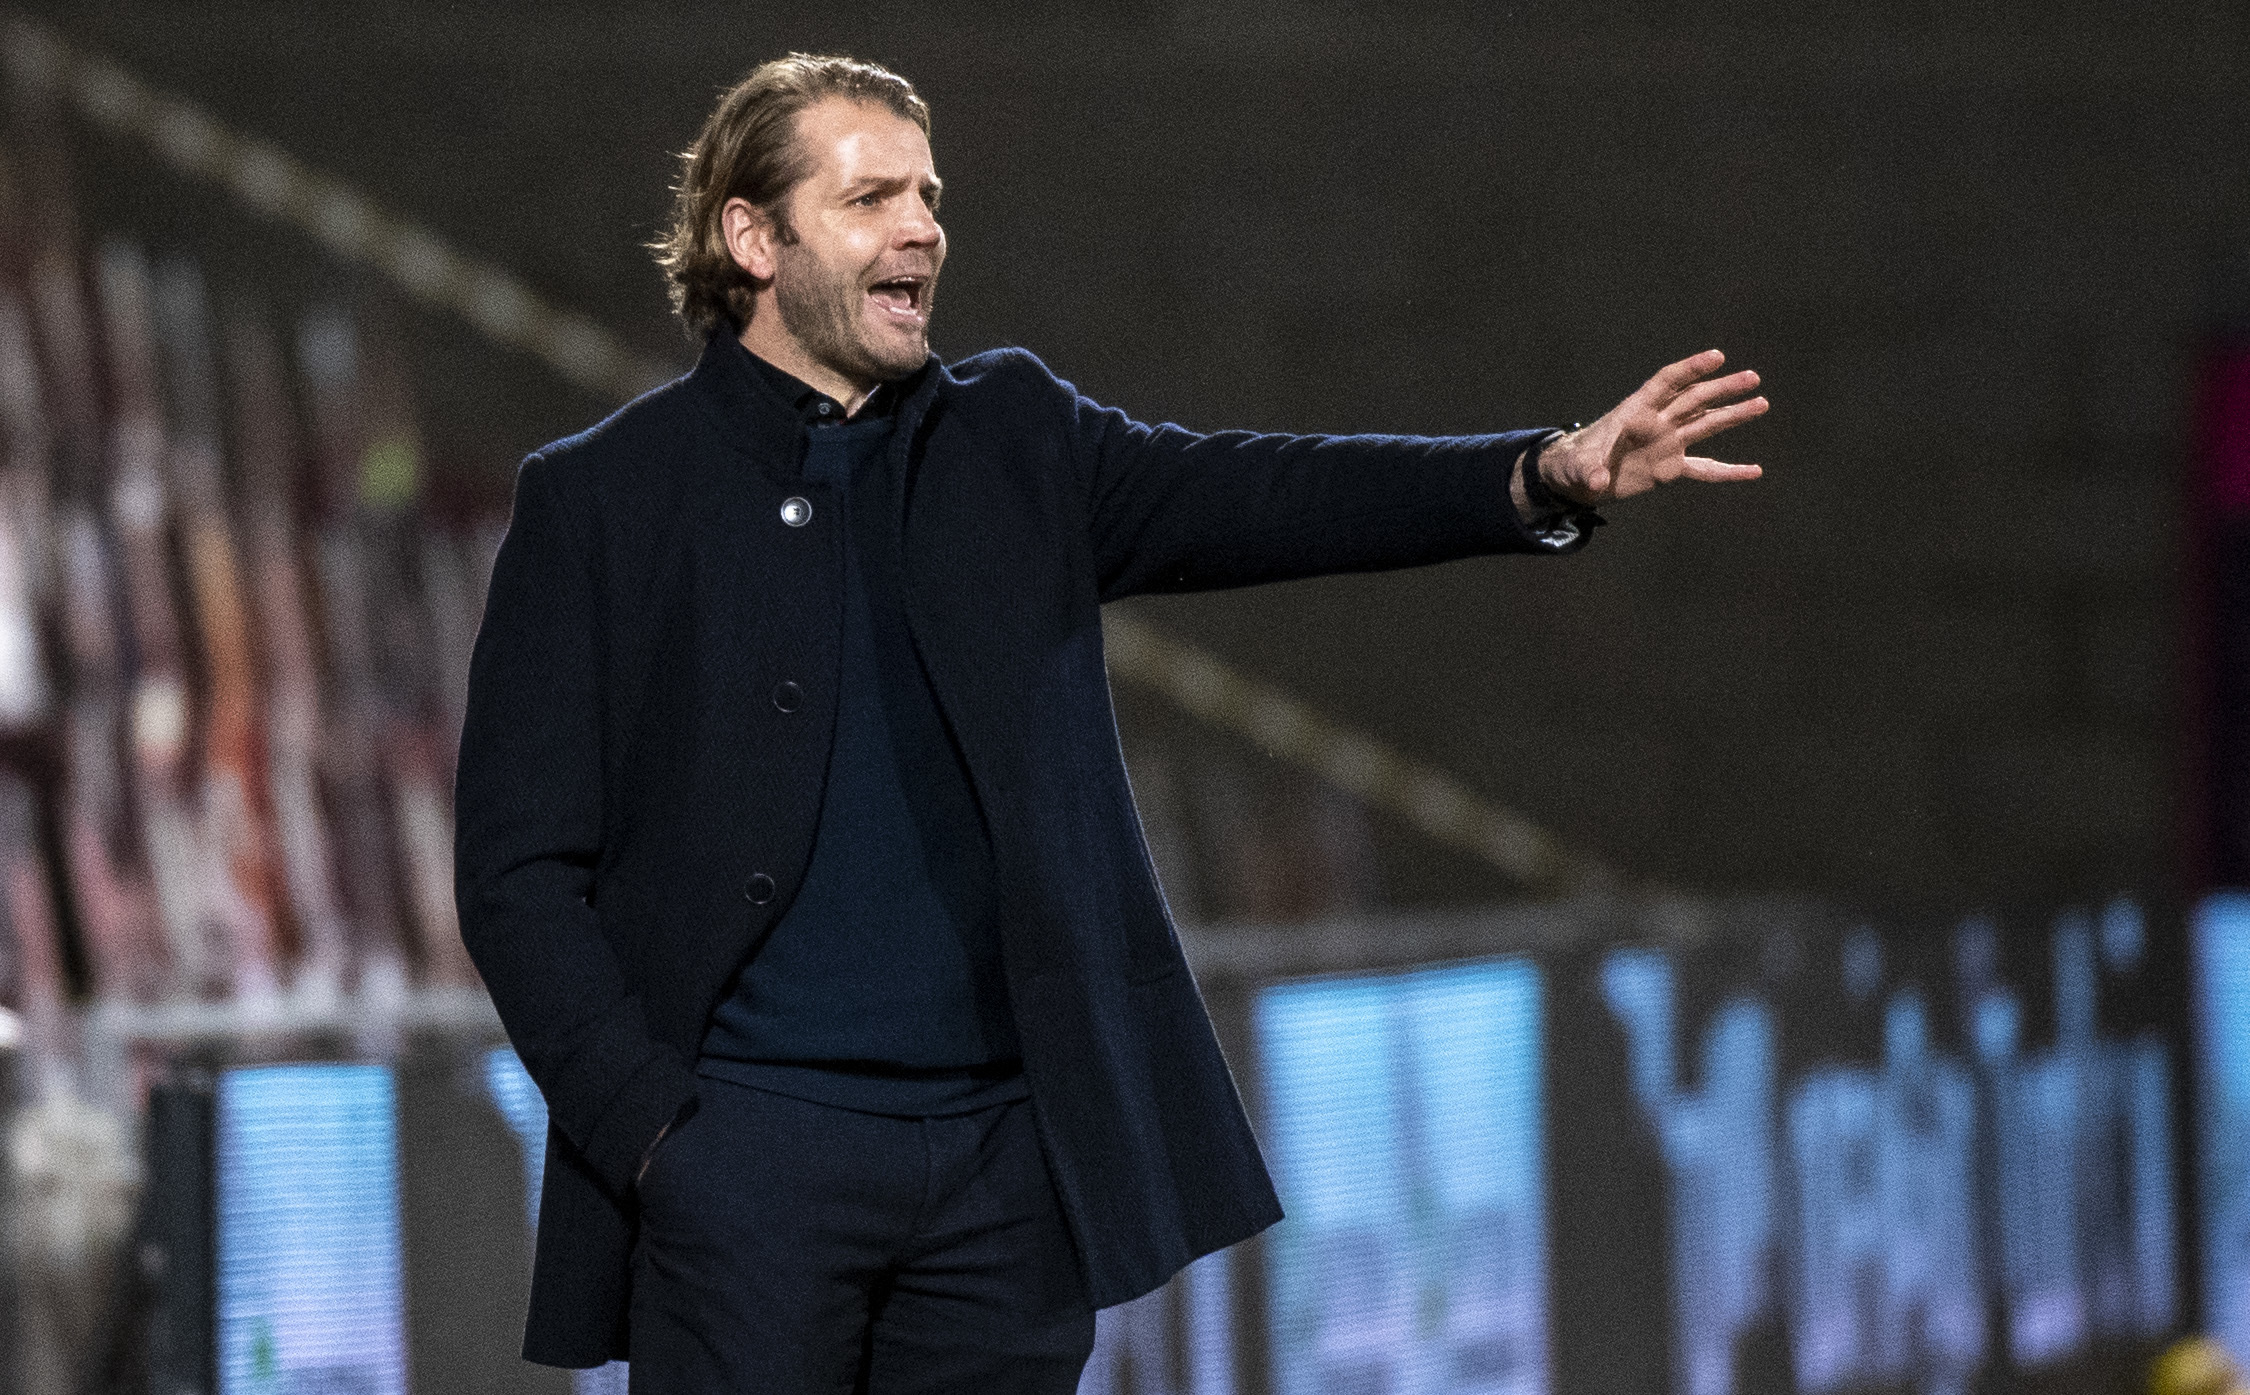 Hearts 2021/22 preview: Robbie Neilson's side have high expectations on Premiership return